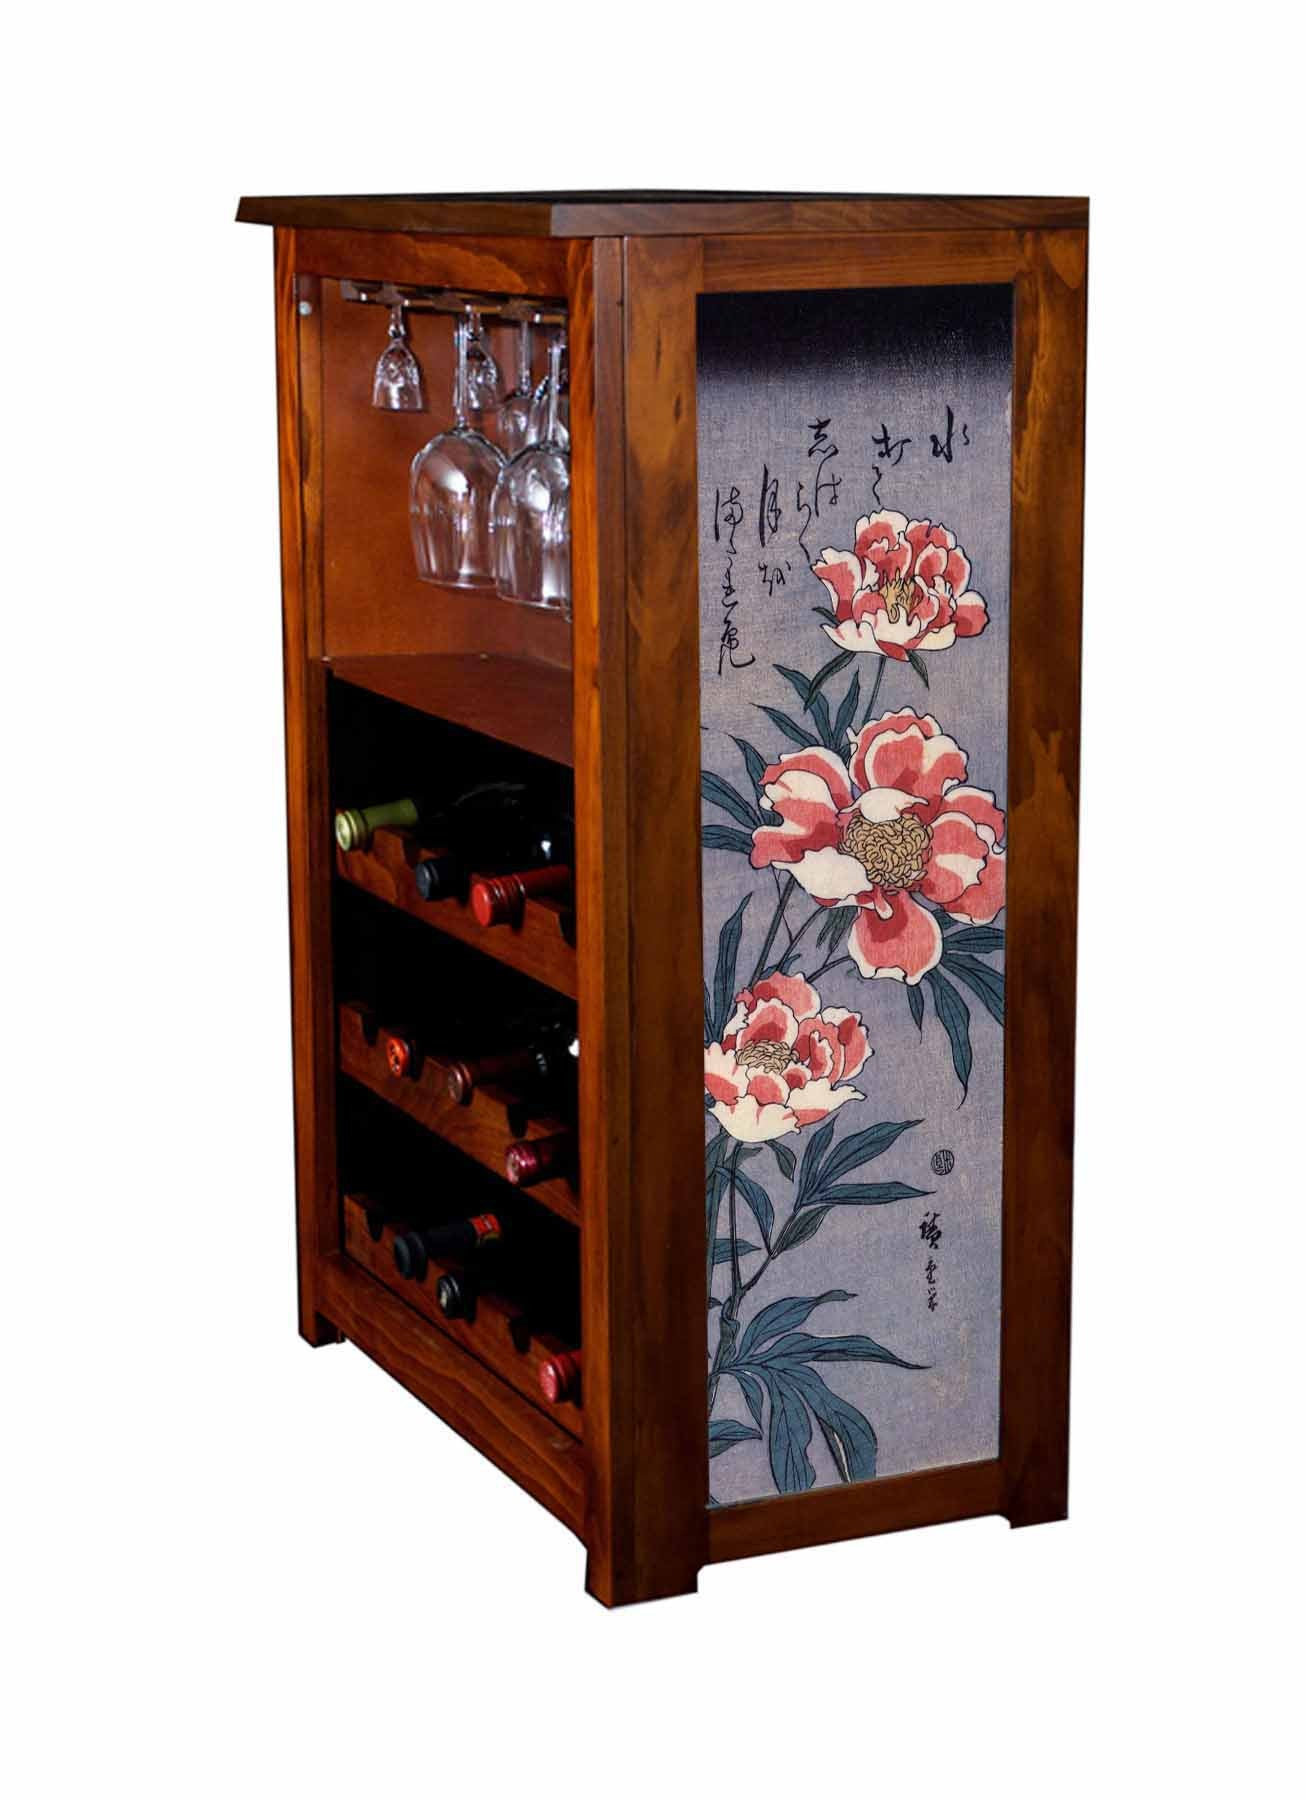 Wine cabinet with peonies by Hiroshige